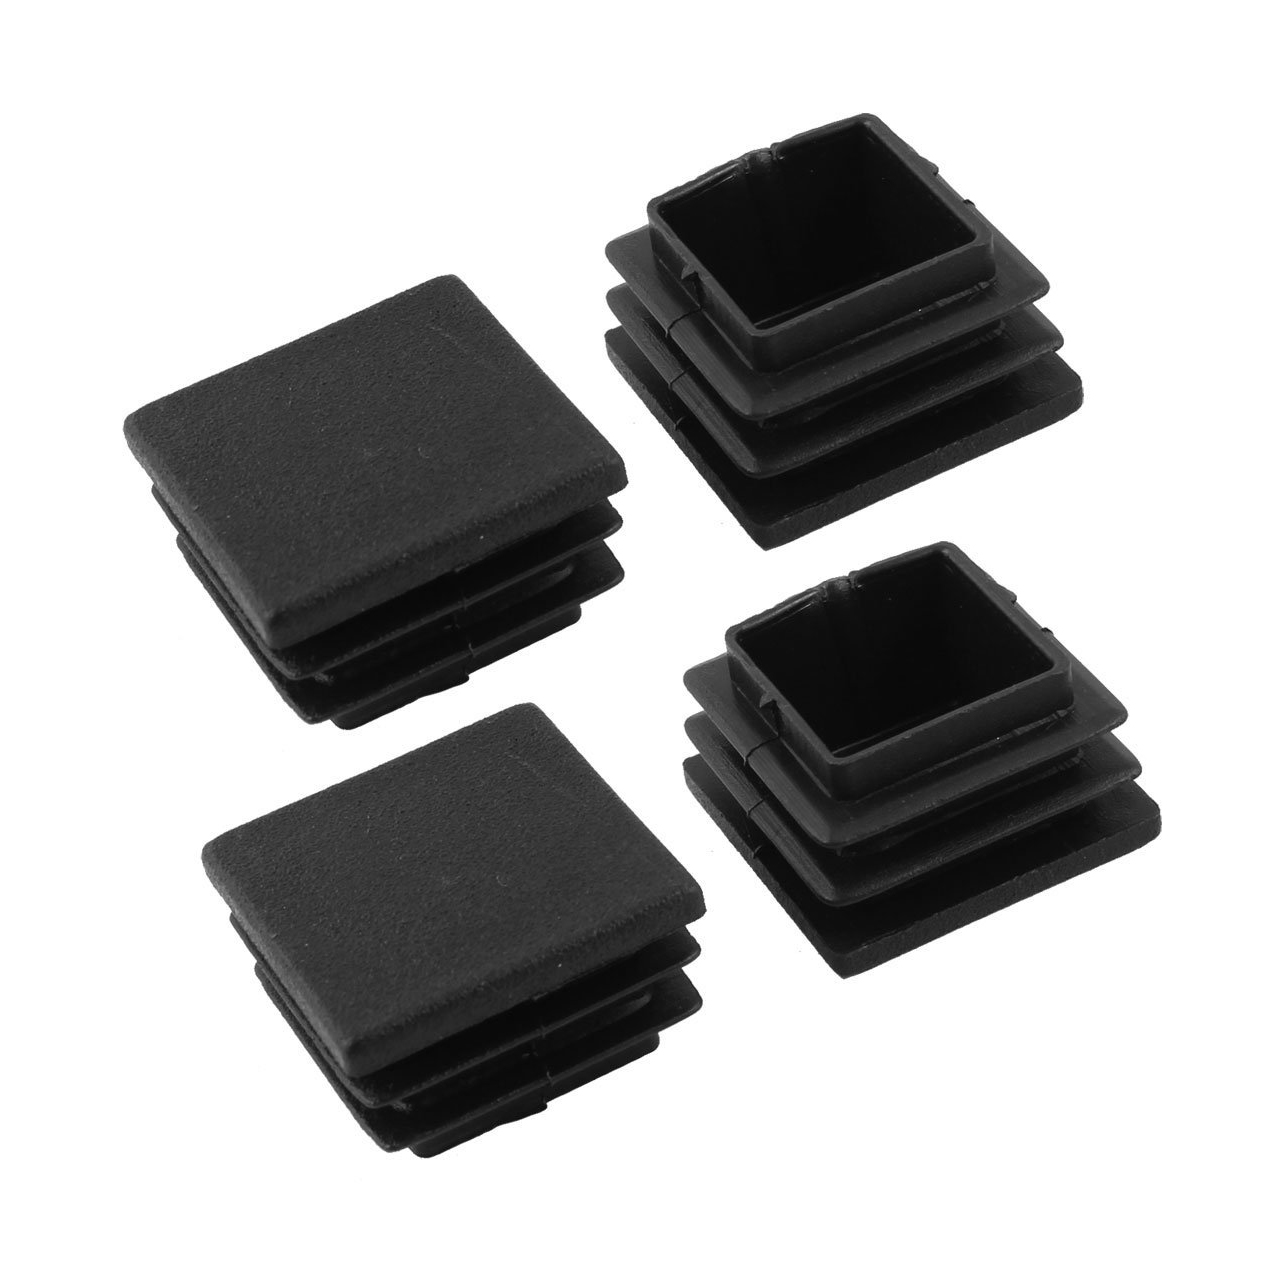 GSFY-Plastic Square Blanking End Caps Tubing Tube Inserts 30mm X 30mm 4 Pcs